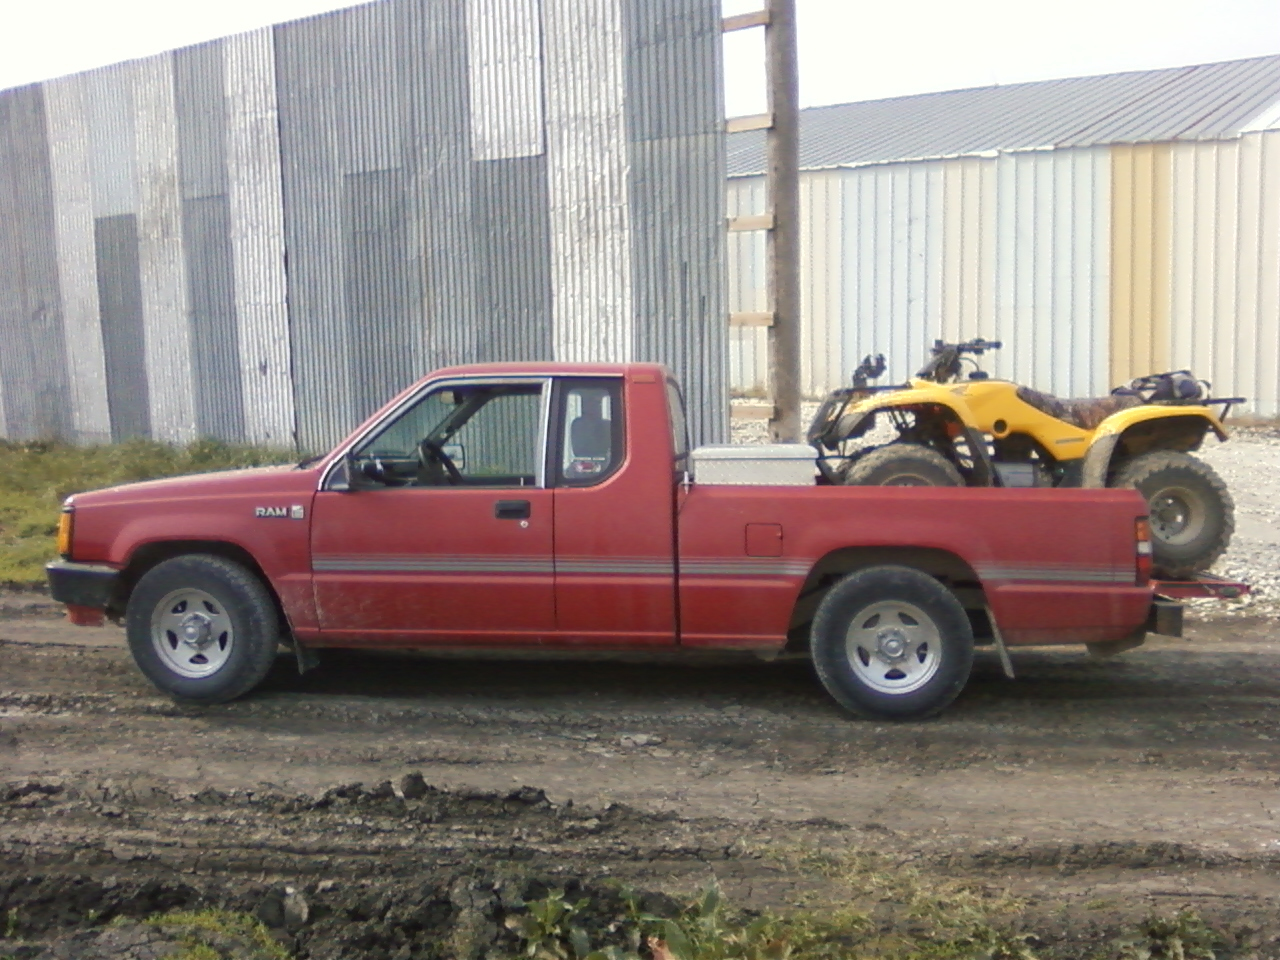 1989 Dodge Ram 50 Pickup, This is a picture of my ram 50 with my honda recon in the back.